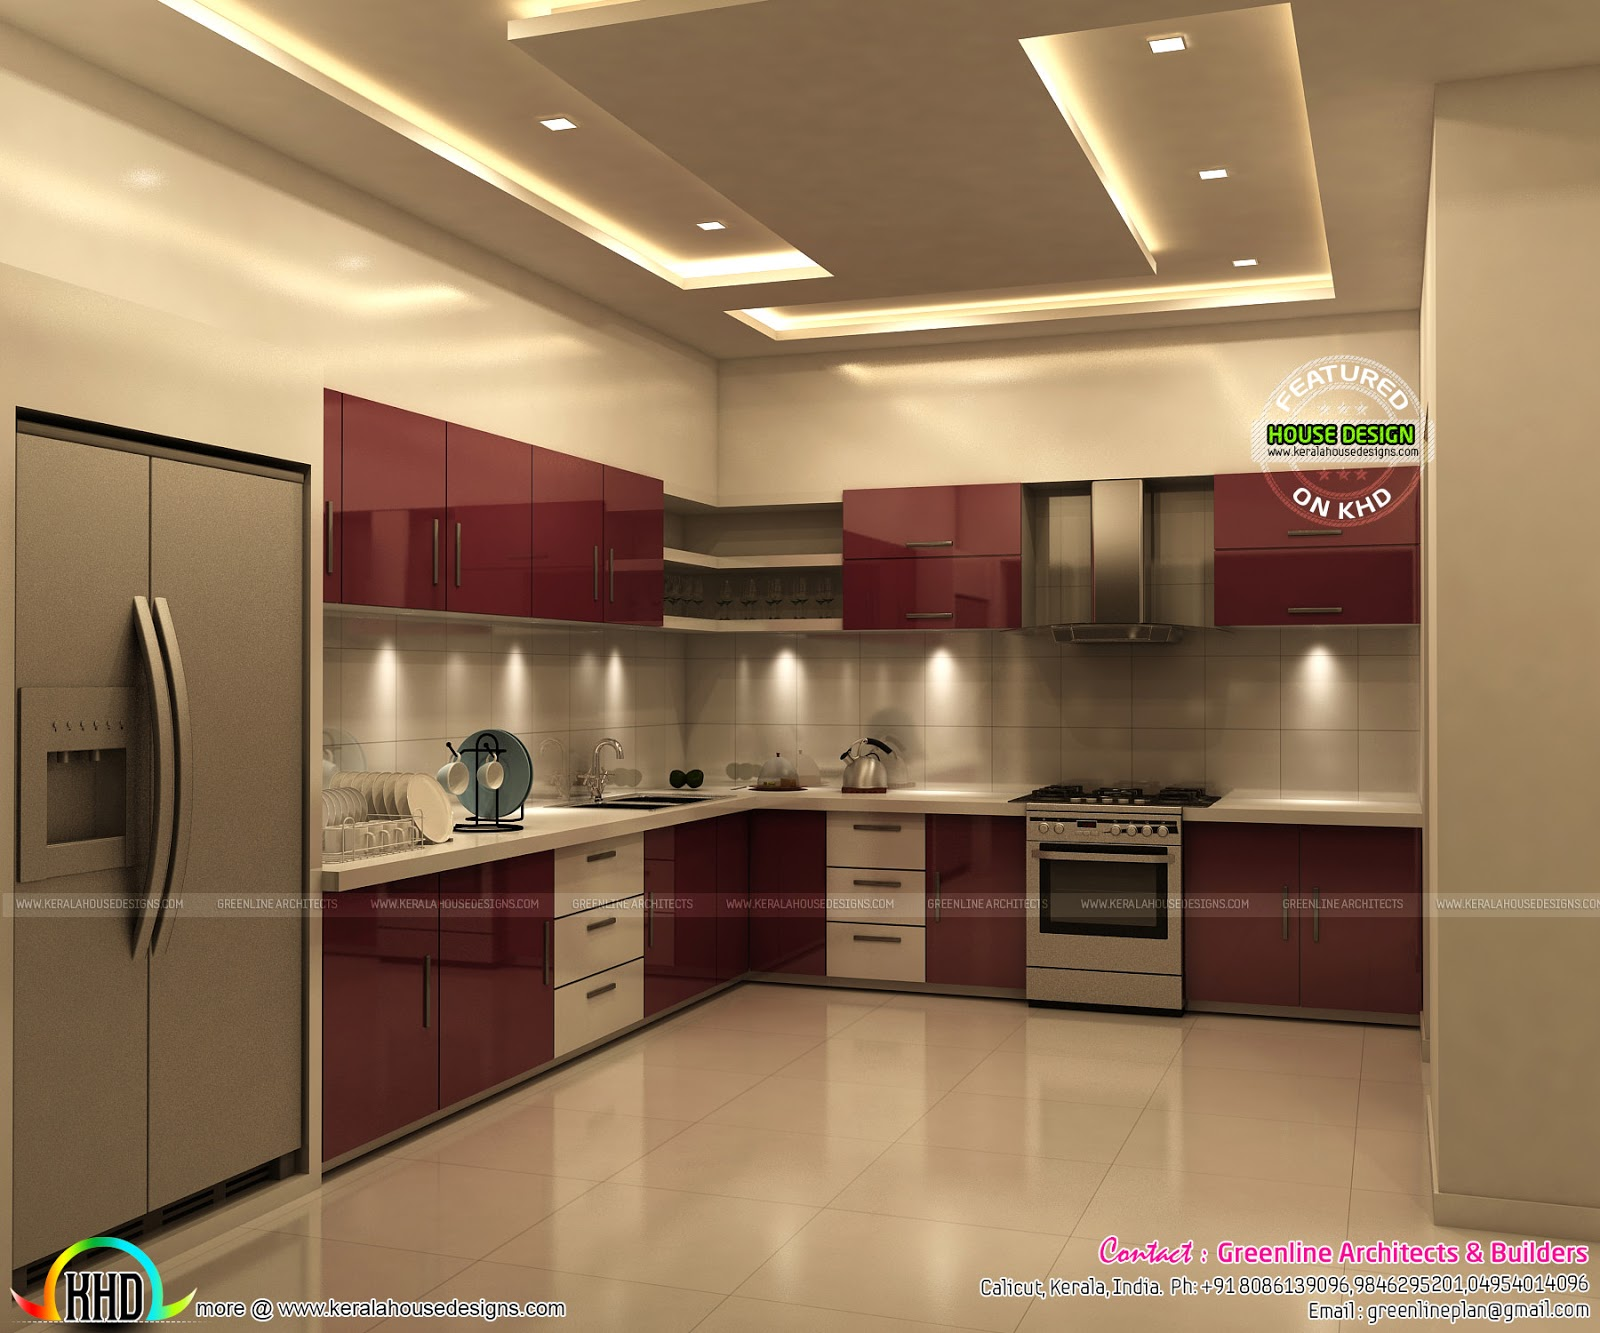 Superb kitchen and bedroom interiors kerala home design for Home plans with interior photos